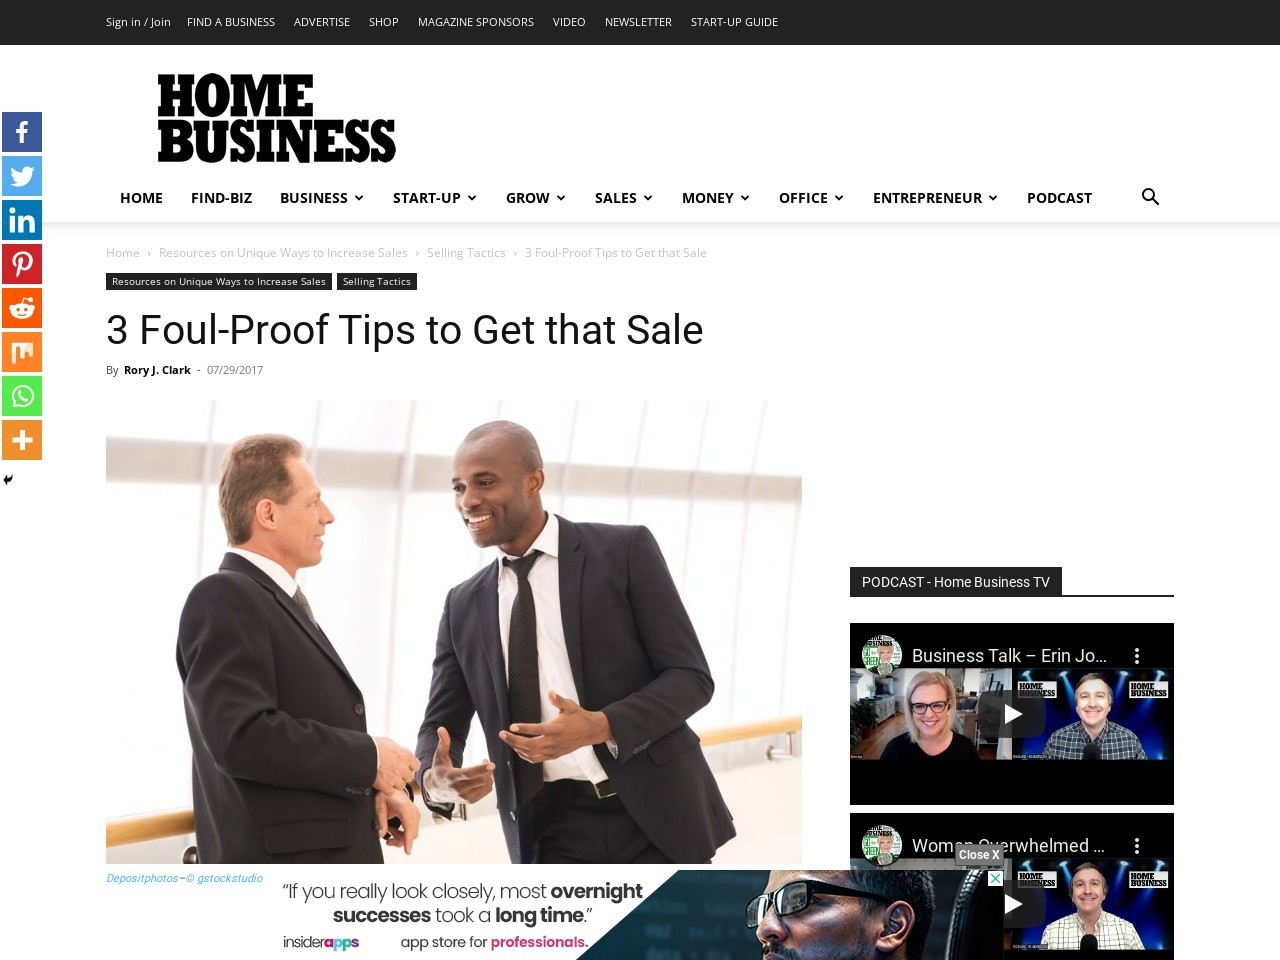 3 Foul-Proof Tips to Get that Sale